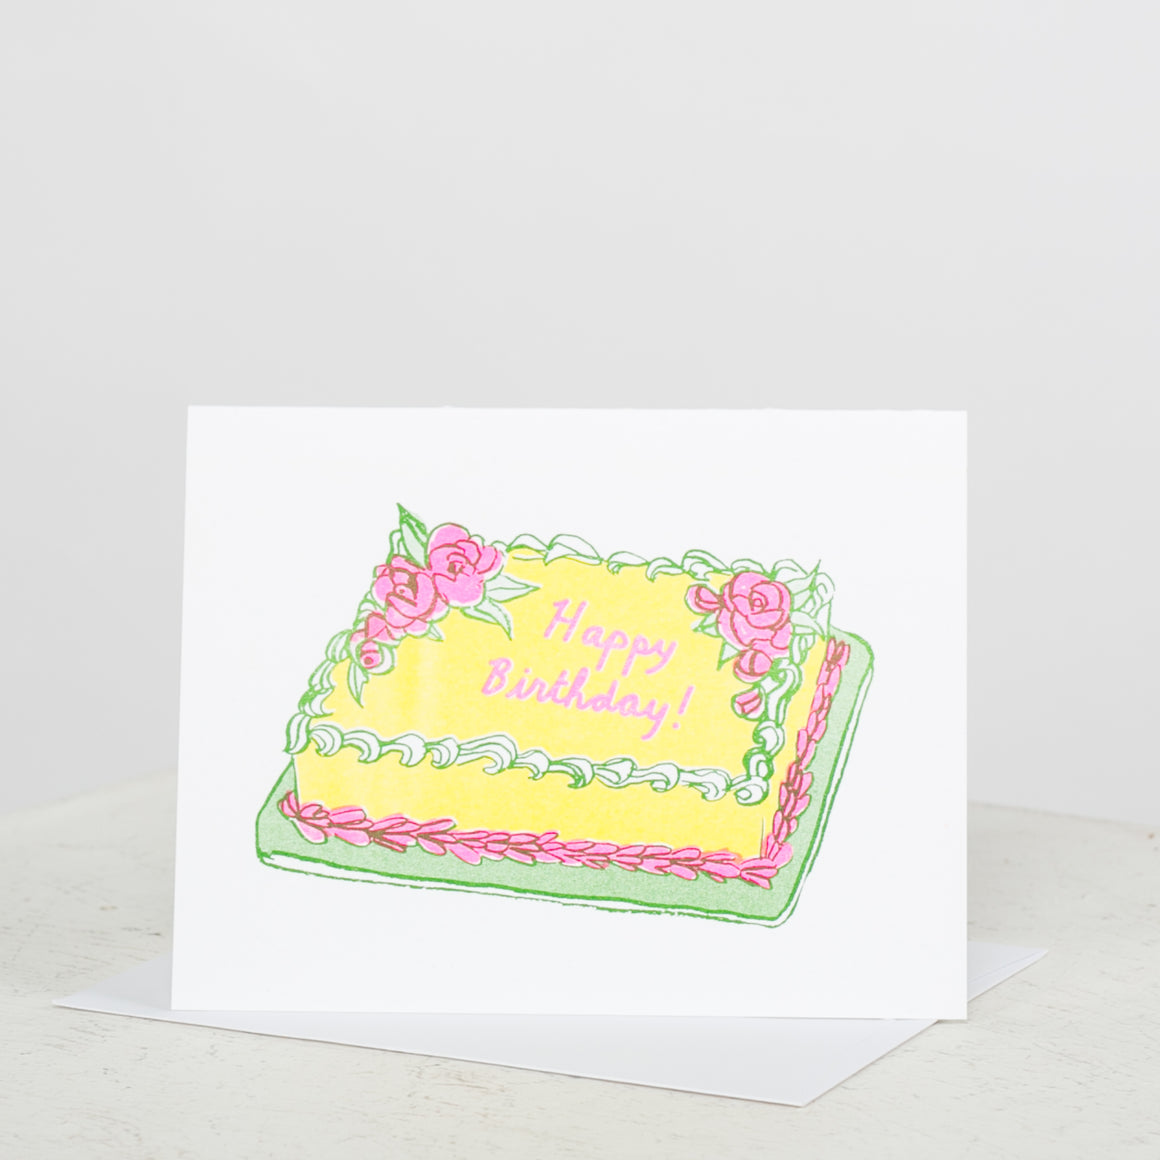 Happy Birthday Cake Card - individual-medley